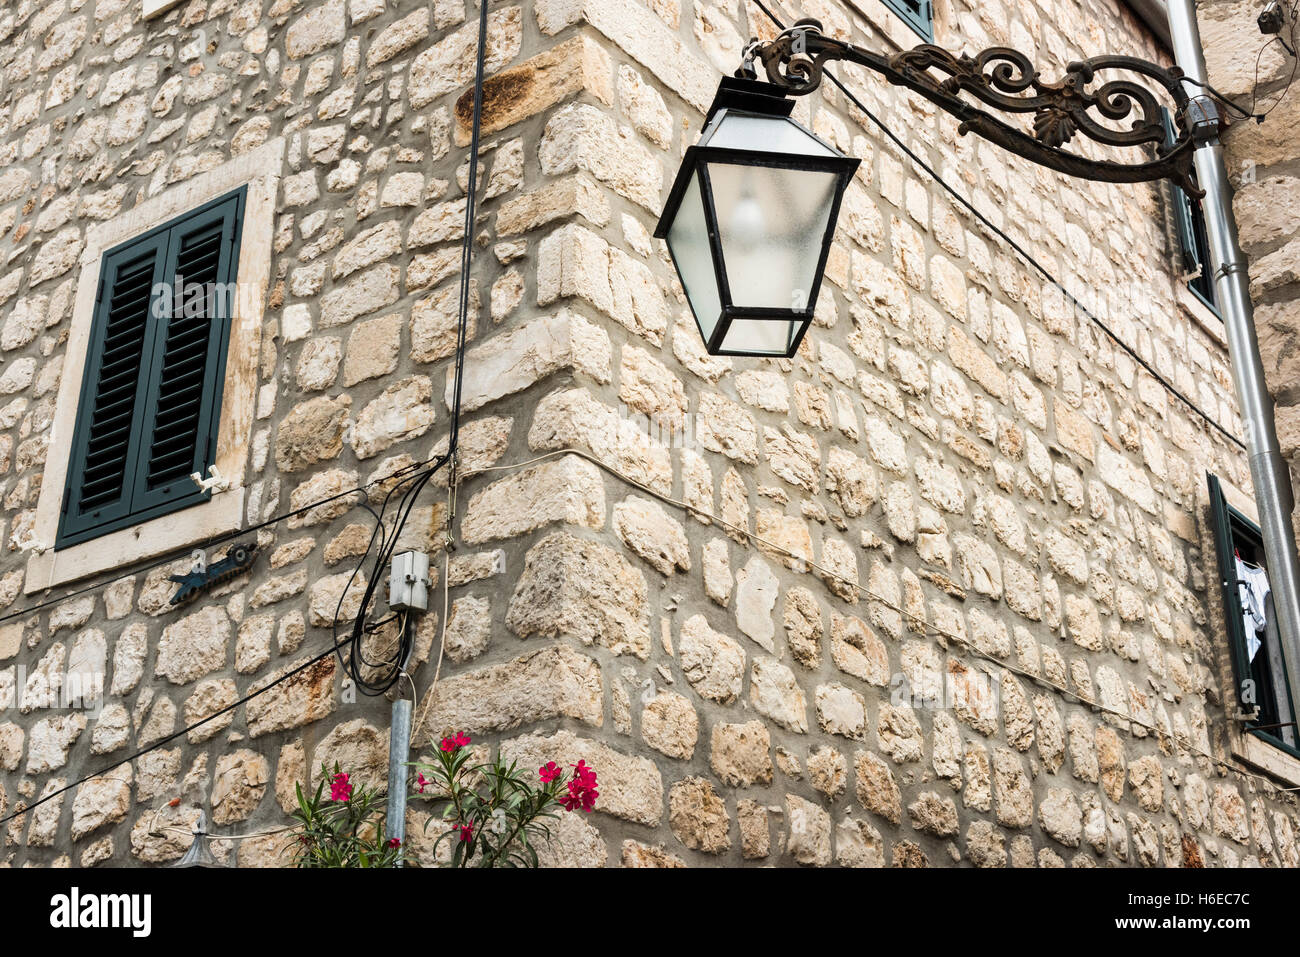 A wrought Iron street lamp on an old stone building at Ston Croatia - Stock Image